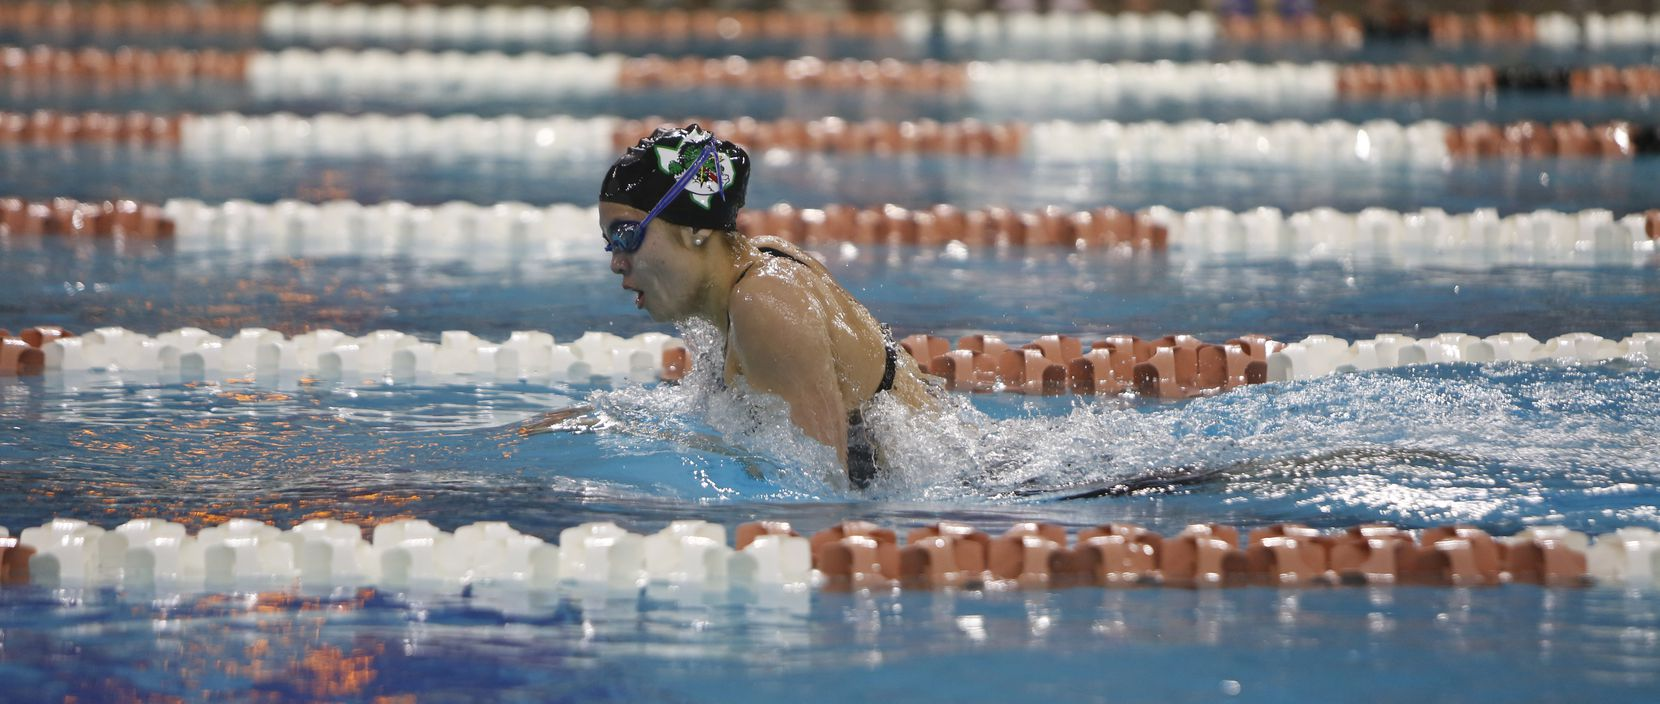 Southlake Carroll's Corbyn Cormack competes in the Girls 200 Yard IM event. Cormack won the event with a time of 2:00.39.The UIL Class 6A state swimming and diving finals were held at the University of Texas' Lee and Joe Jamail Texas Swimming Center in Austin on February 15, 2020.